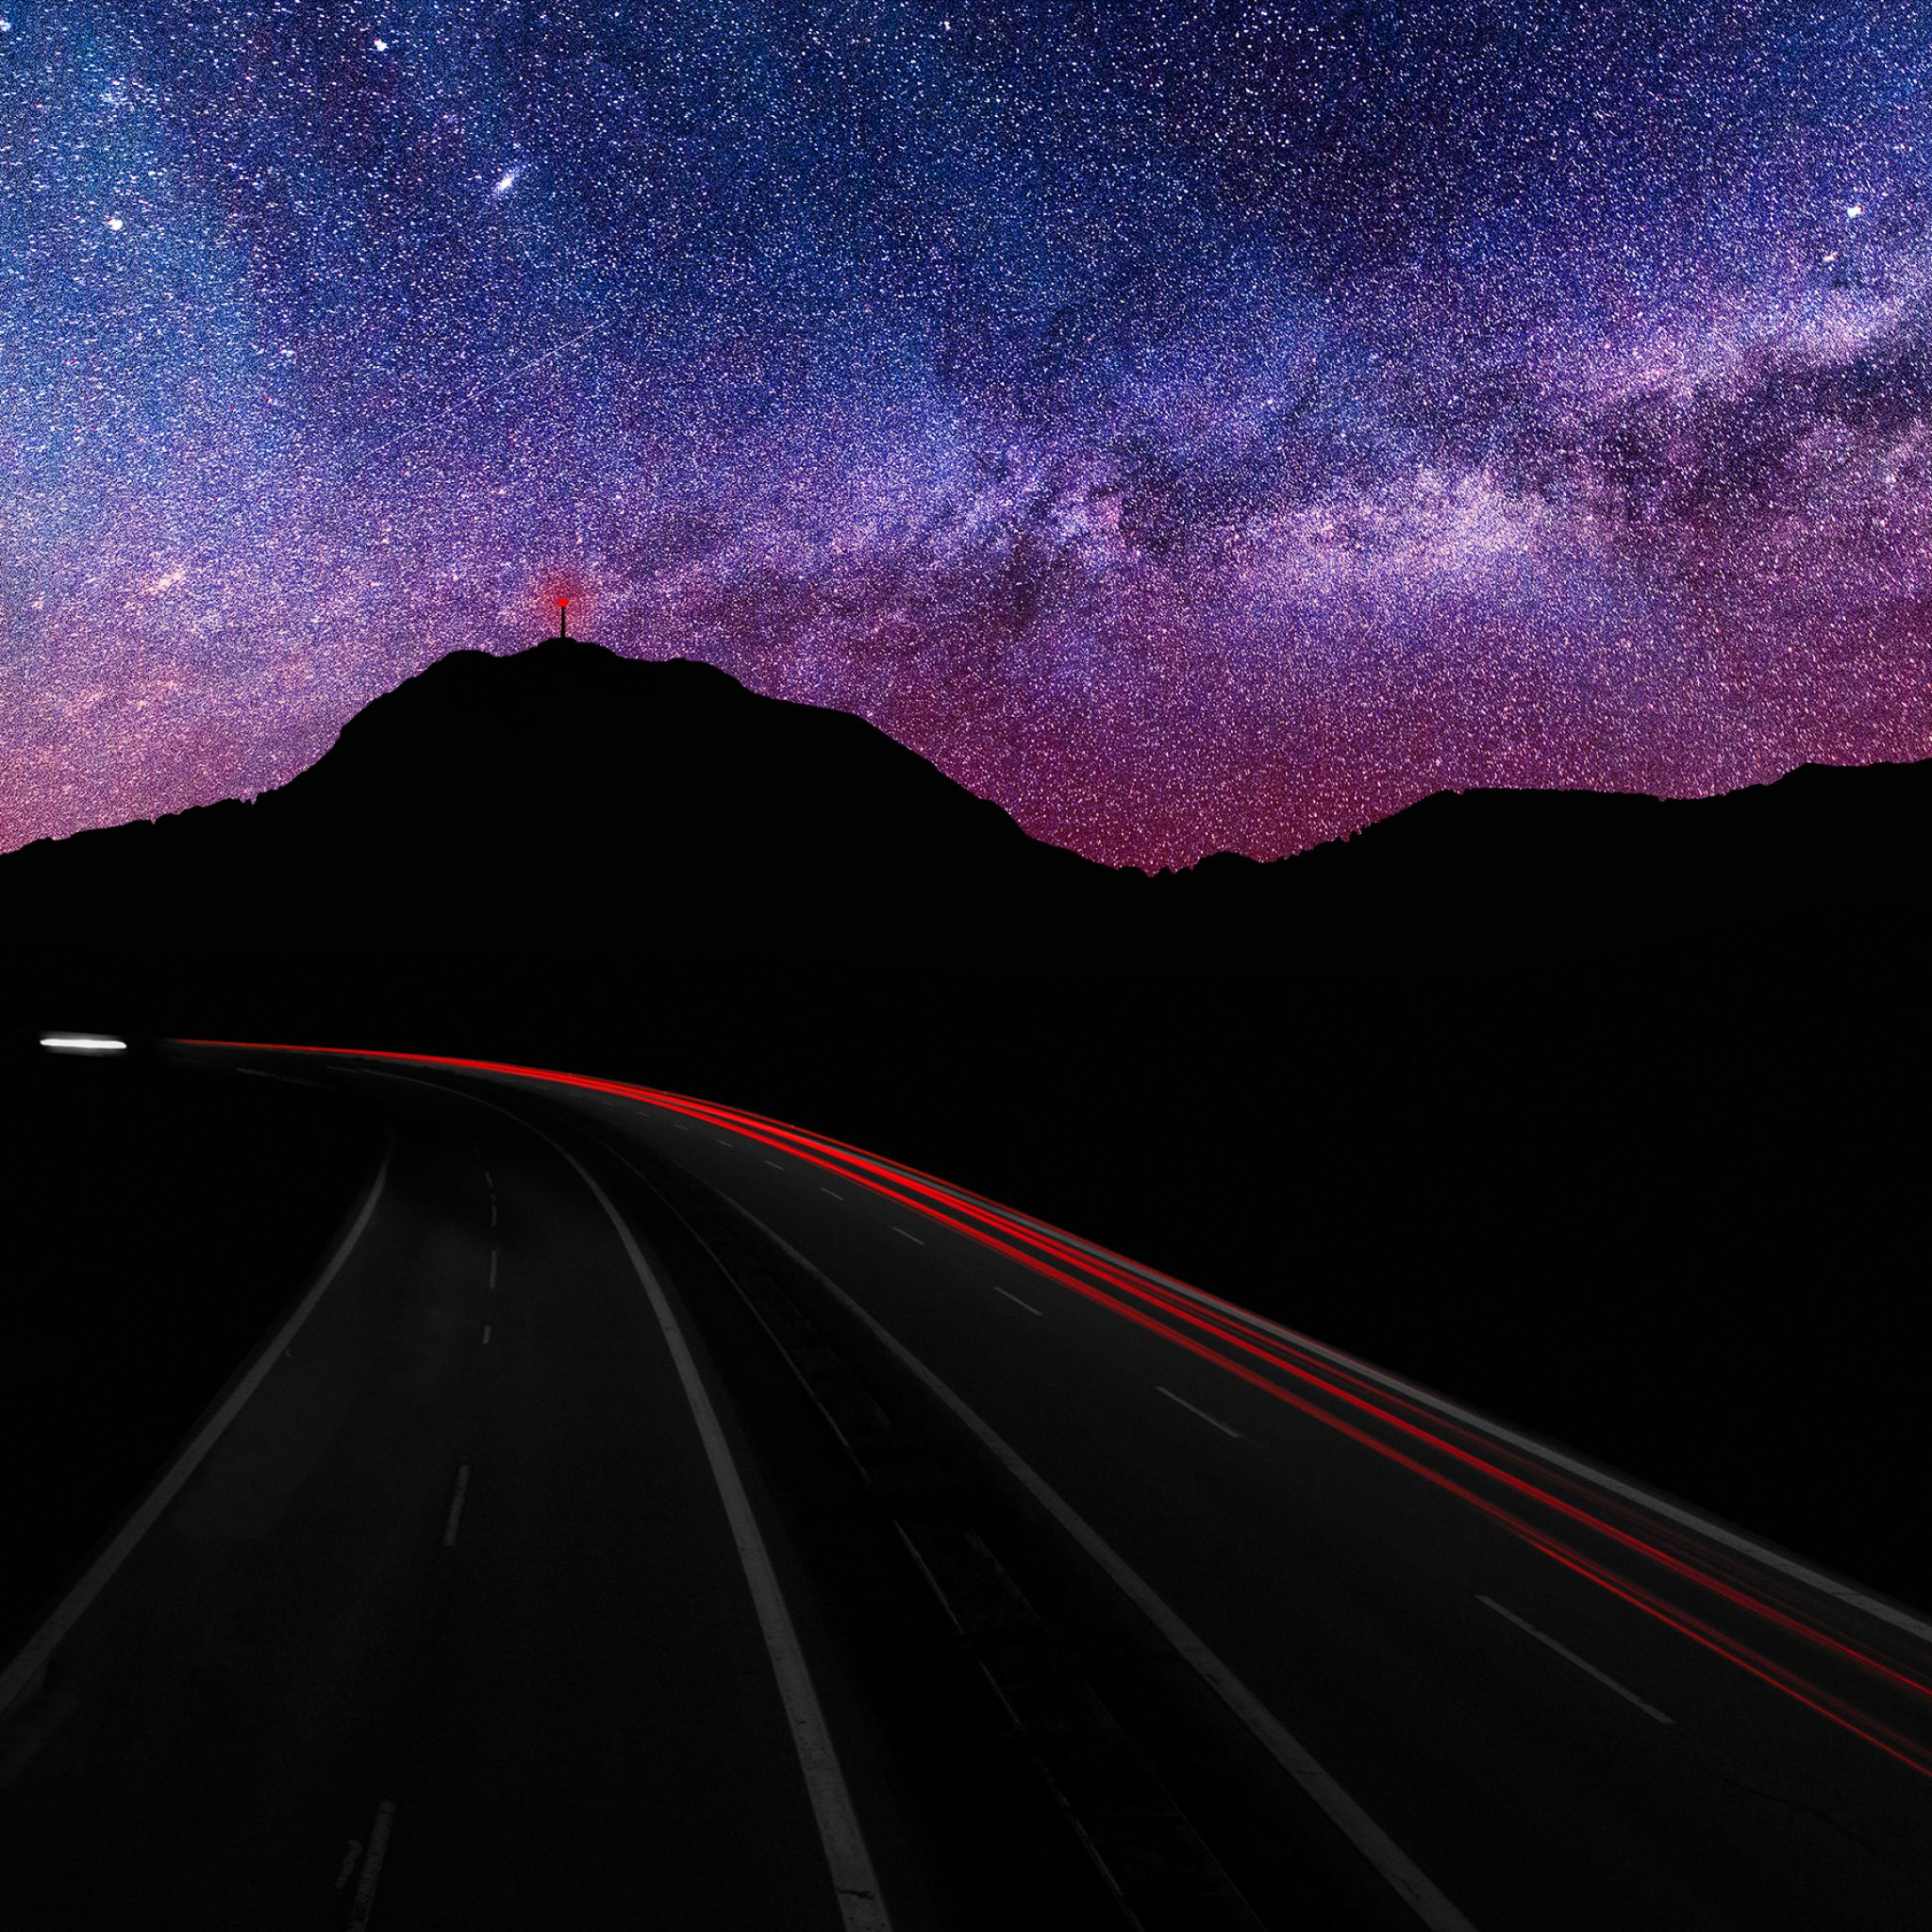 stars tap to see more amazing timelapse photography wallpapers